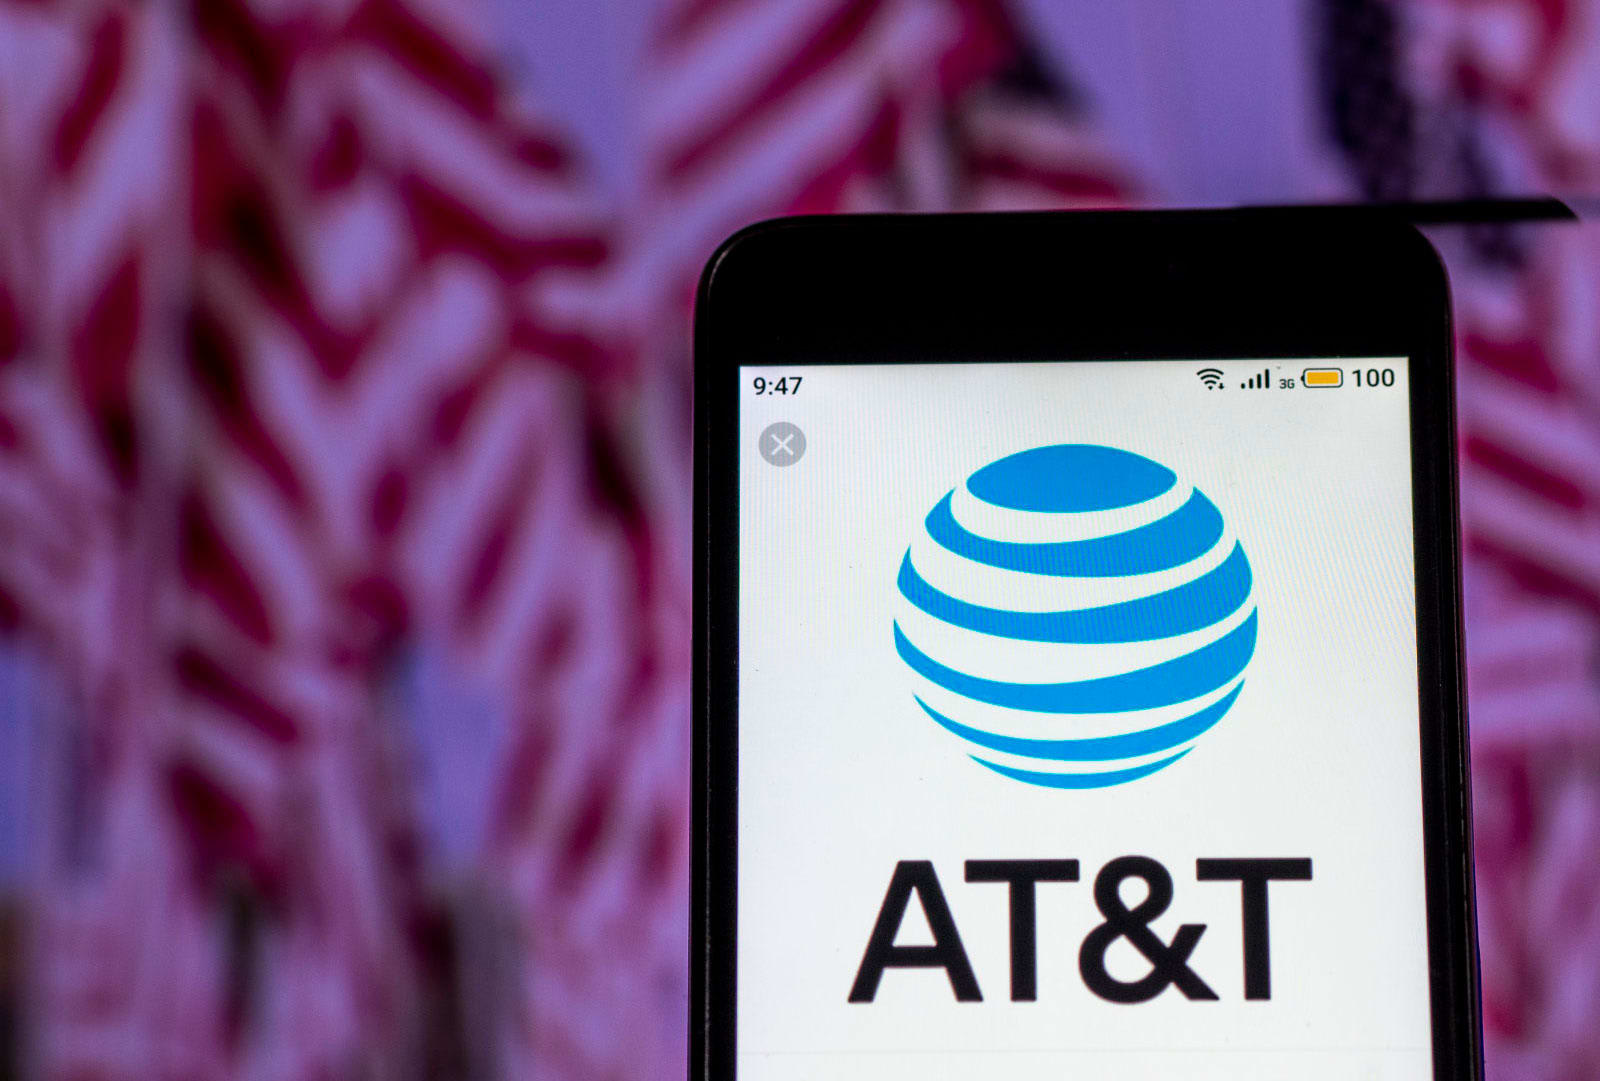 Study claims AT&T's fake 5G is slower than other carrier's